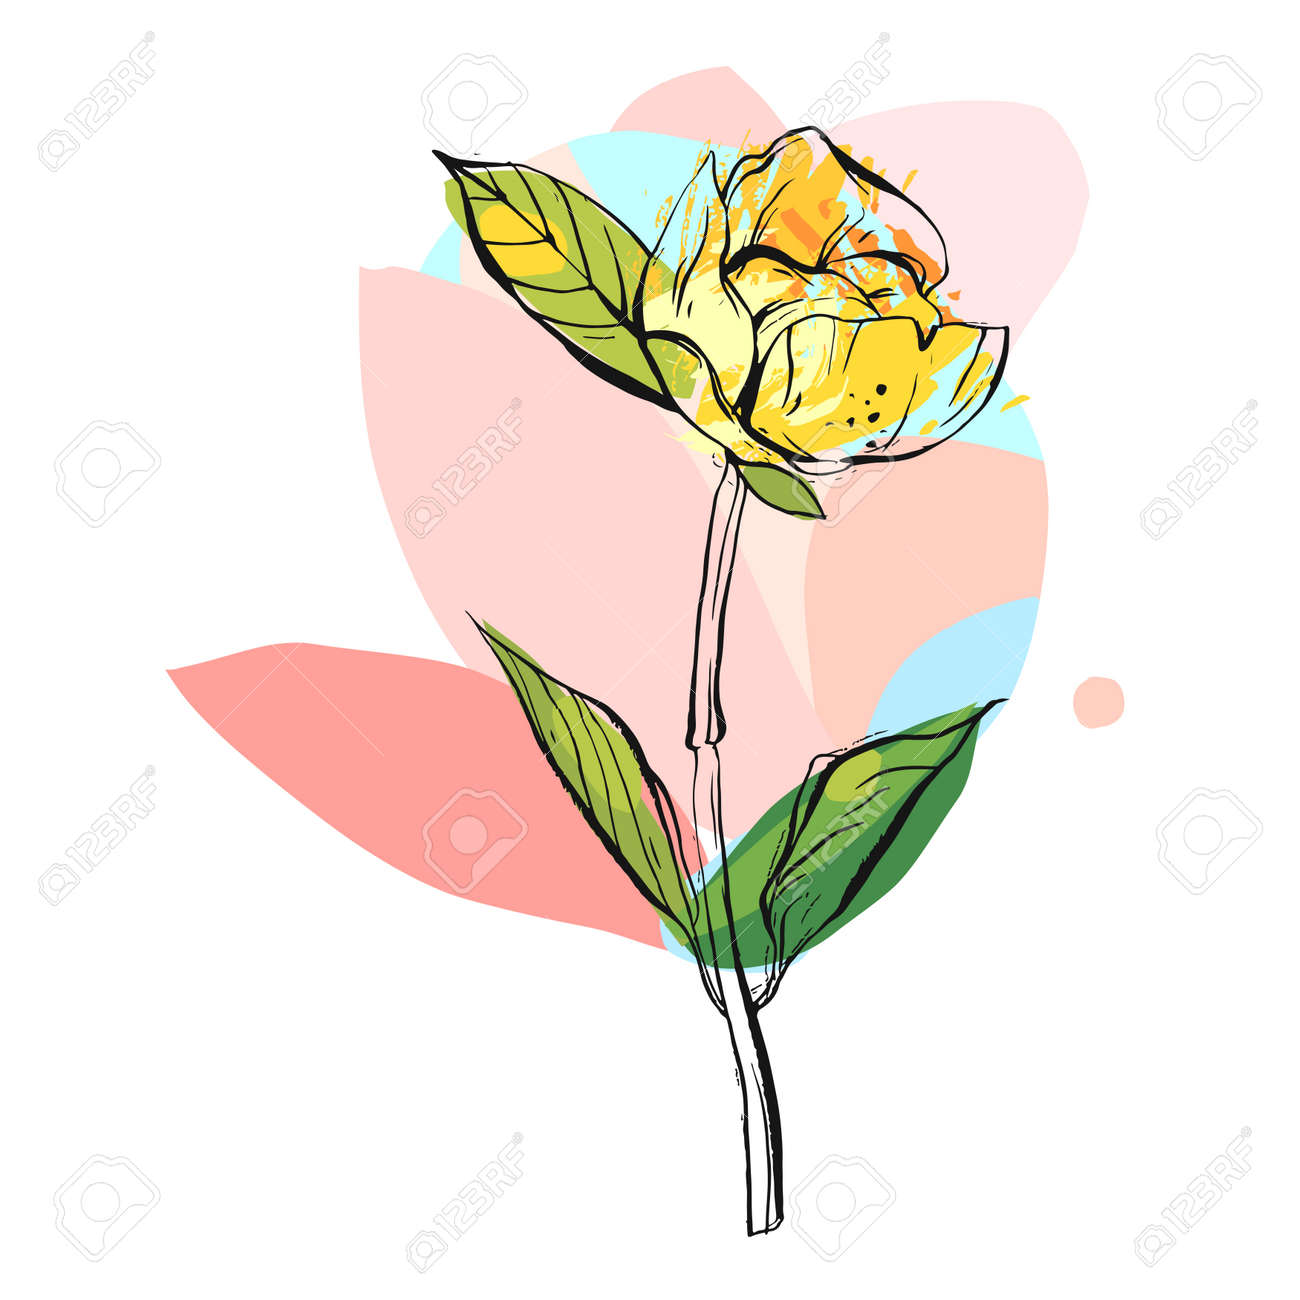 Hand Drawn Vector Abstract Creative Graphic Colorful Flower Illustration Isolated On White BackgroundUnusual Universal